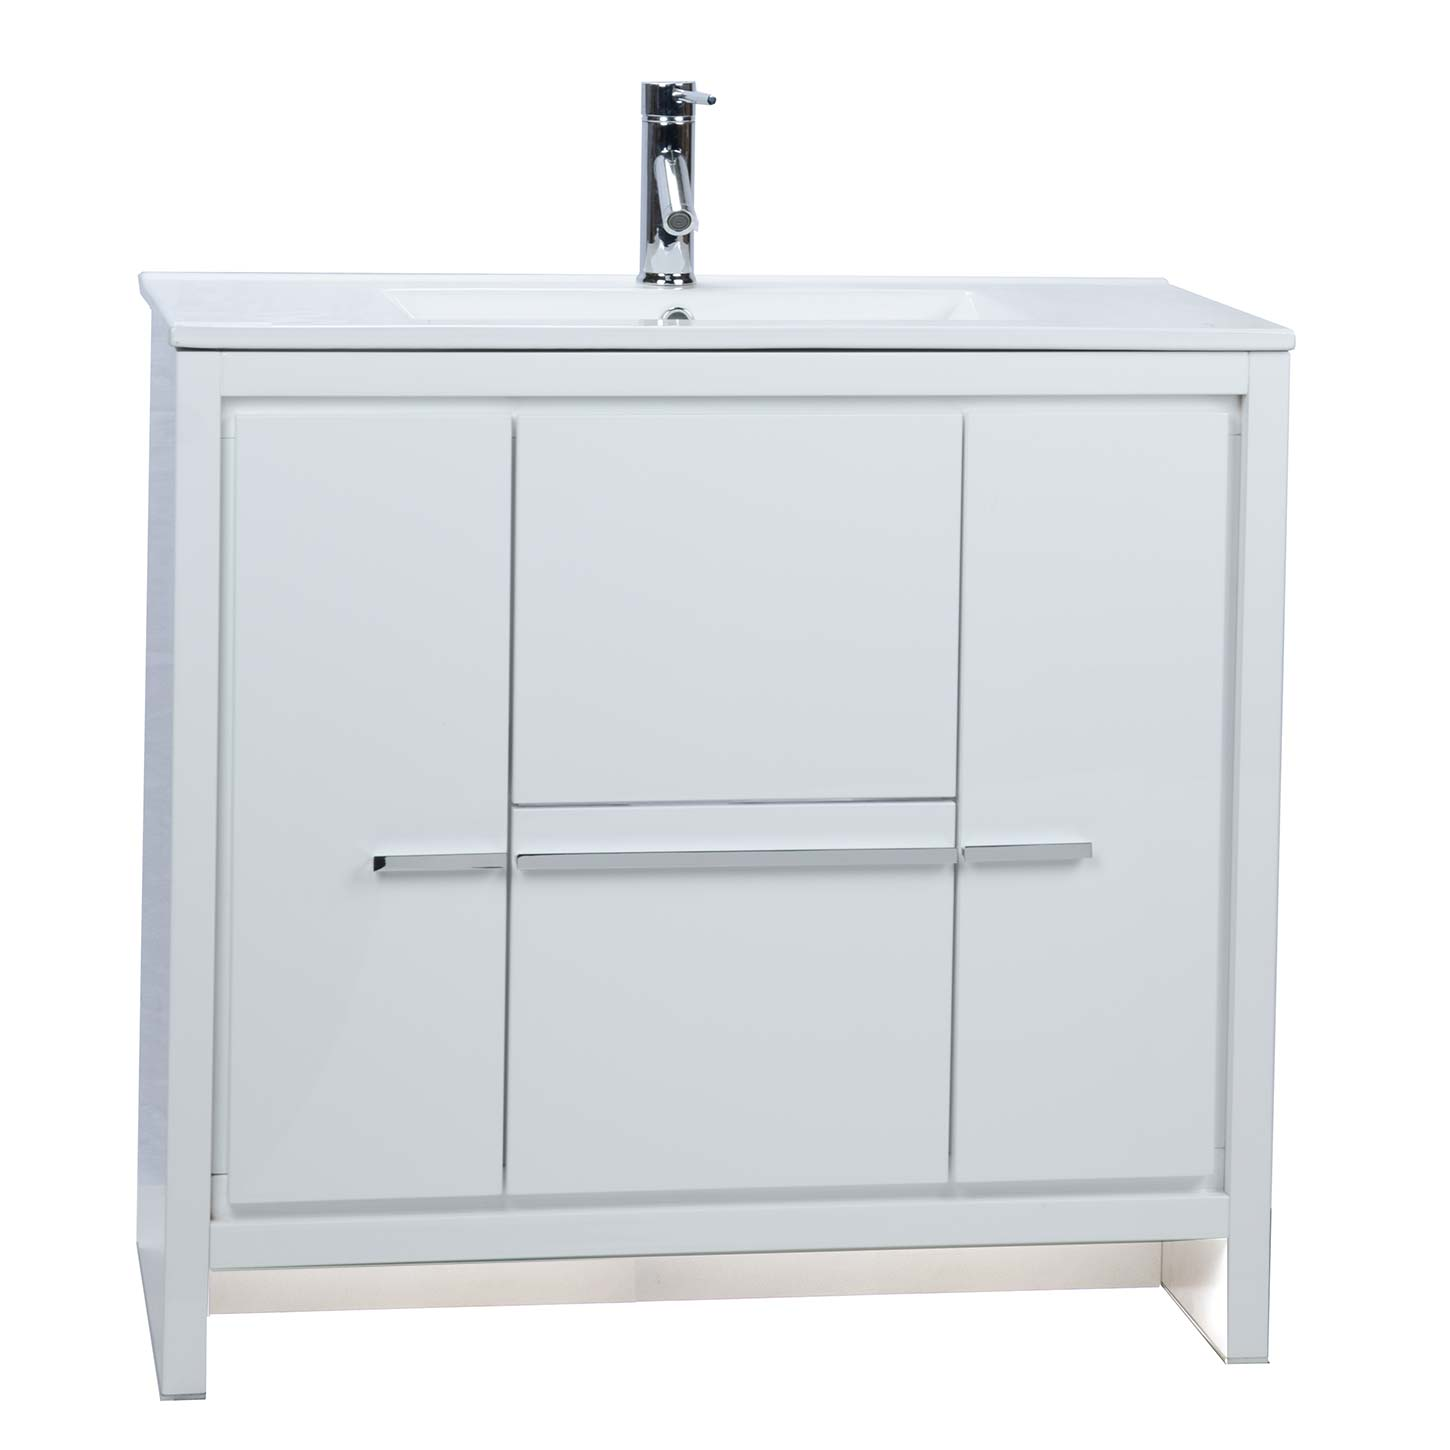 Buy CBI Enna 36 Inch Modern Bathroom Vanity High Gloss ...